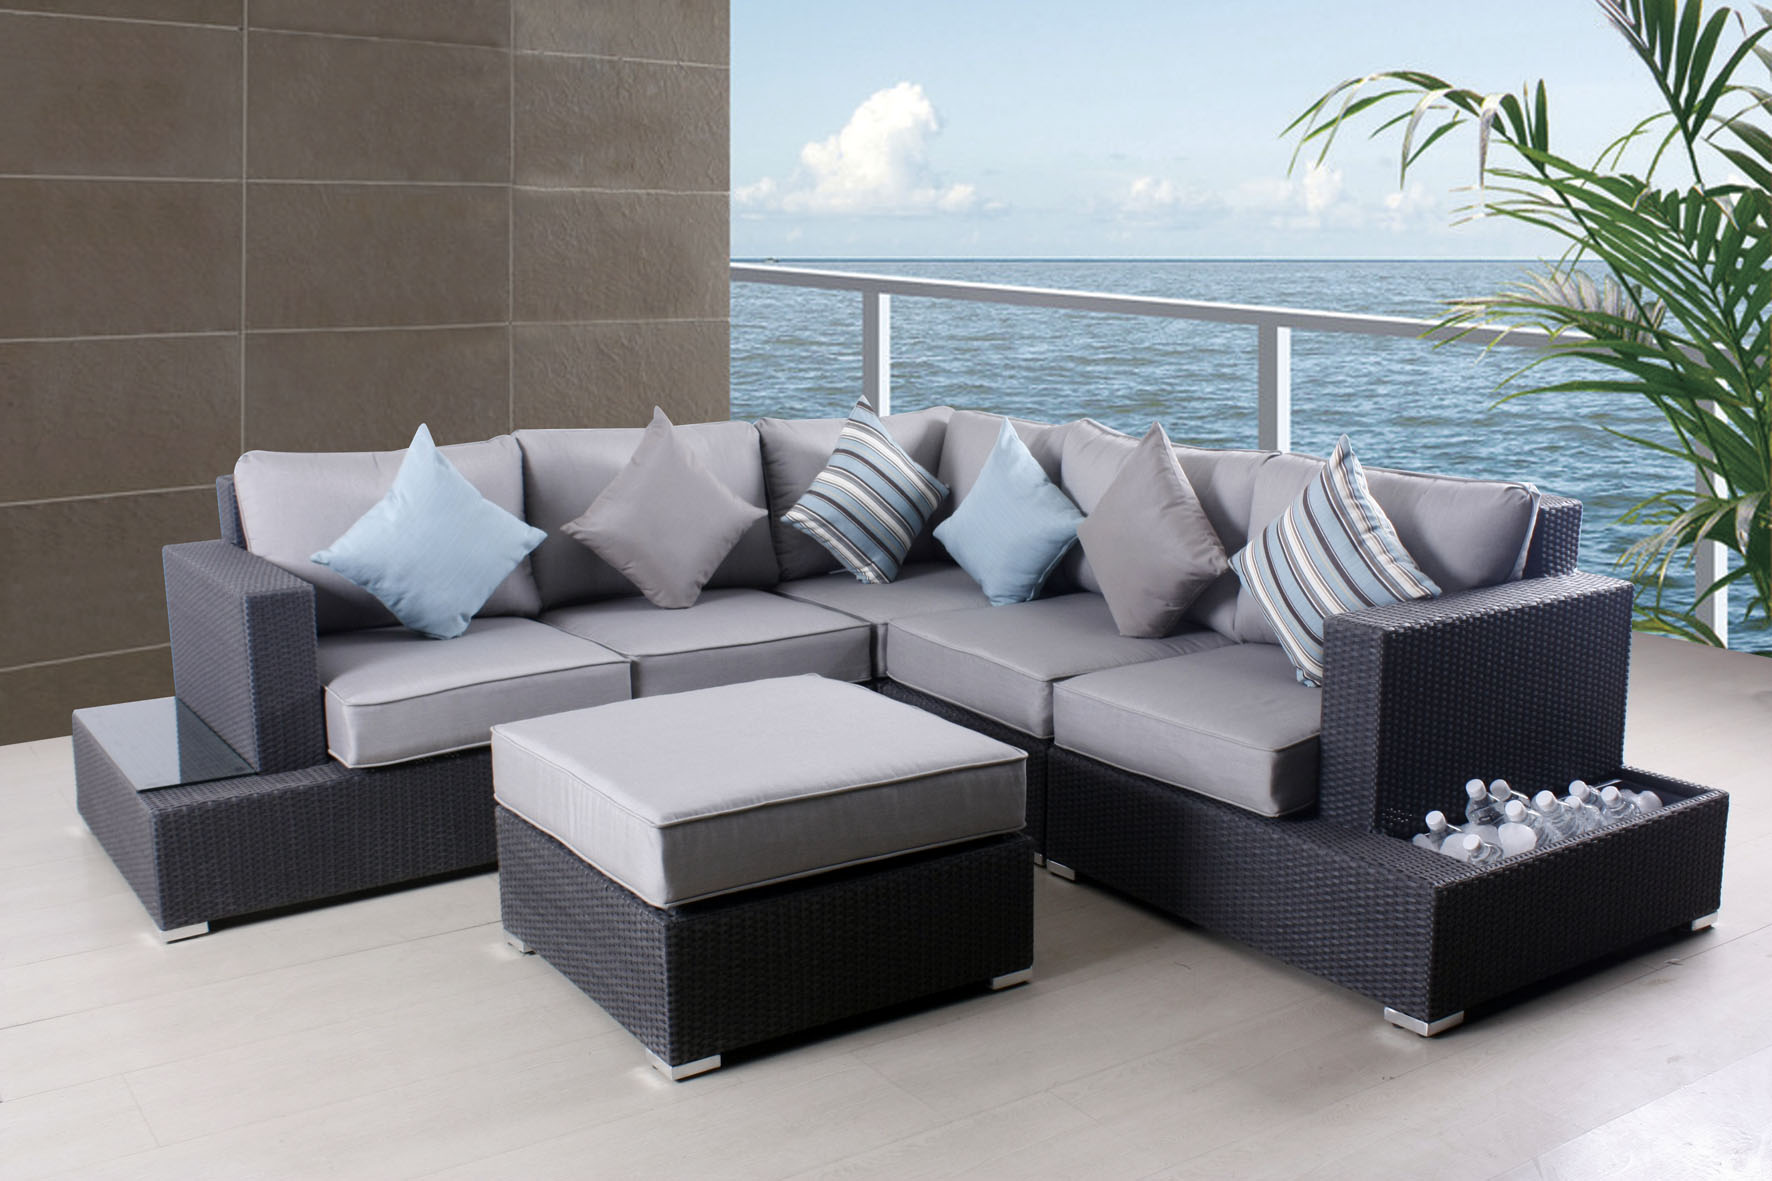 Easy tips for thomasville outdoor furniture purchase for Outside balcony furniture